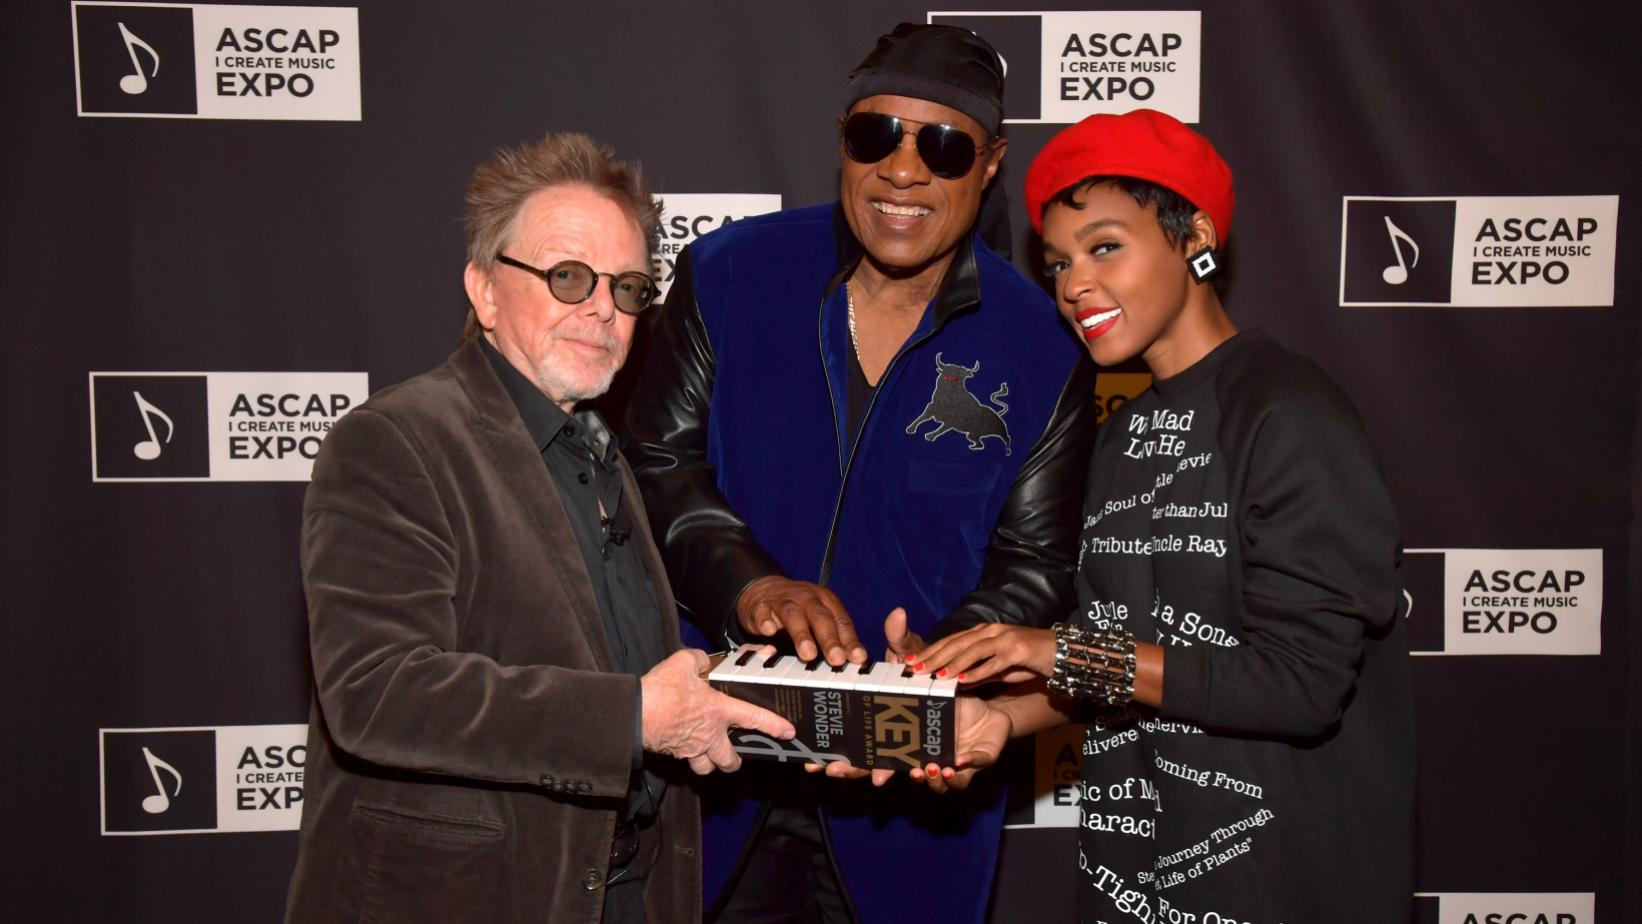 Stevie Wonder, Janelle Monáe and Paul Williams at the 2017 ASCAP Expo